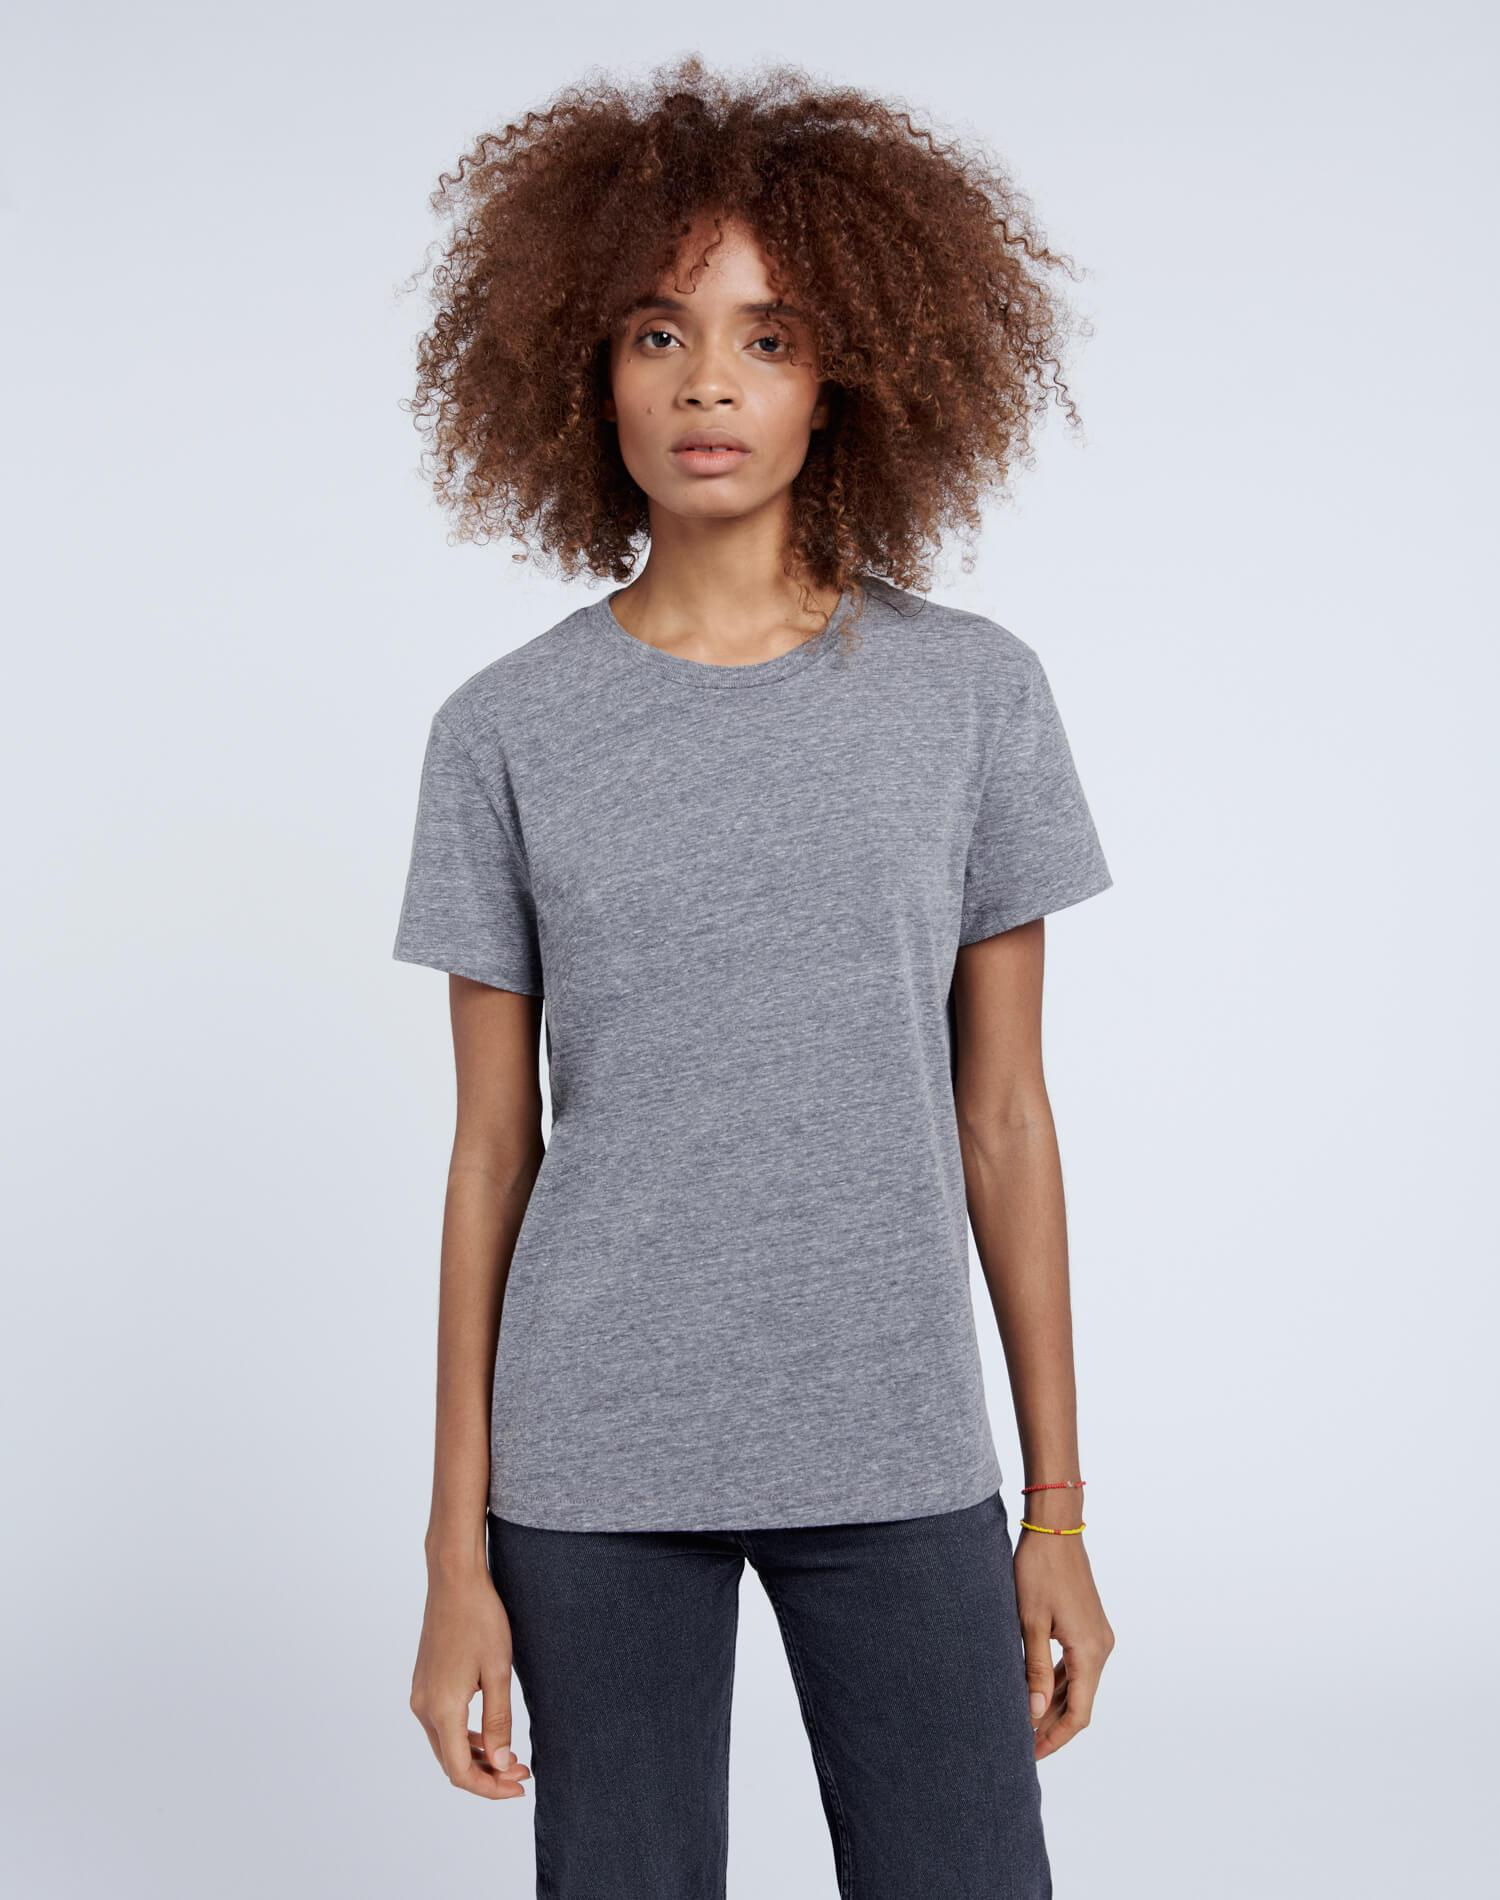 70s Recycled Loose Tee - Heather Grey